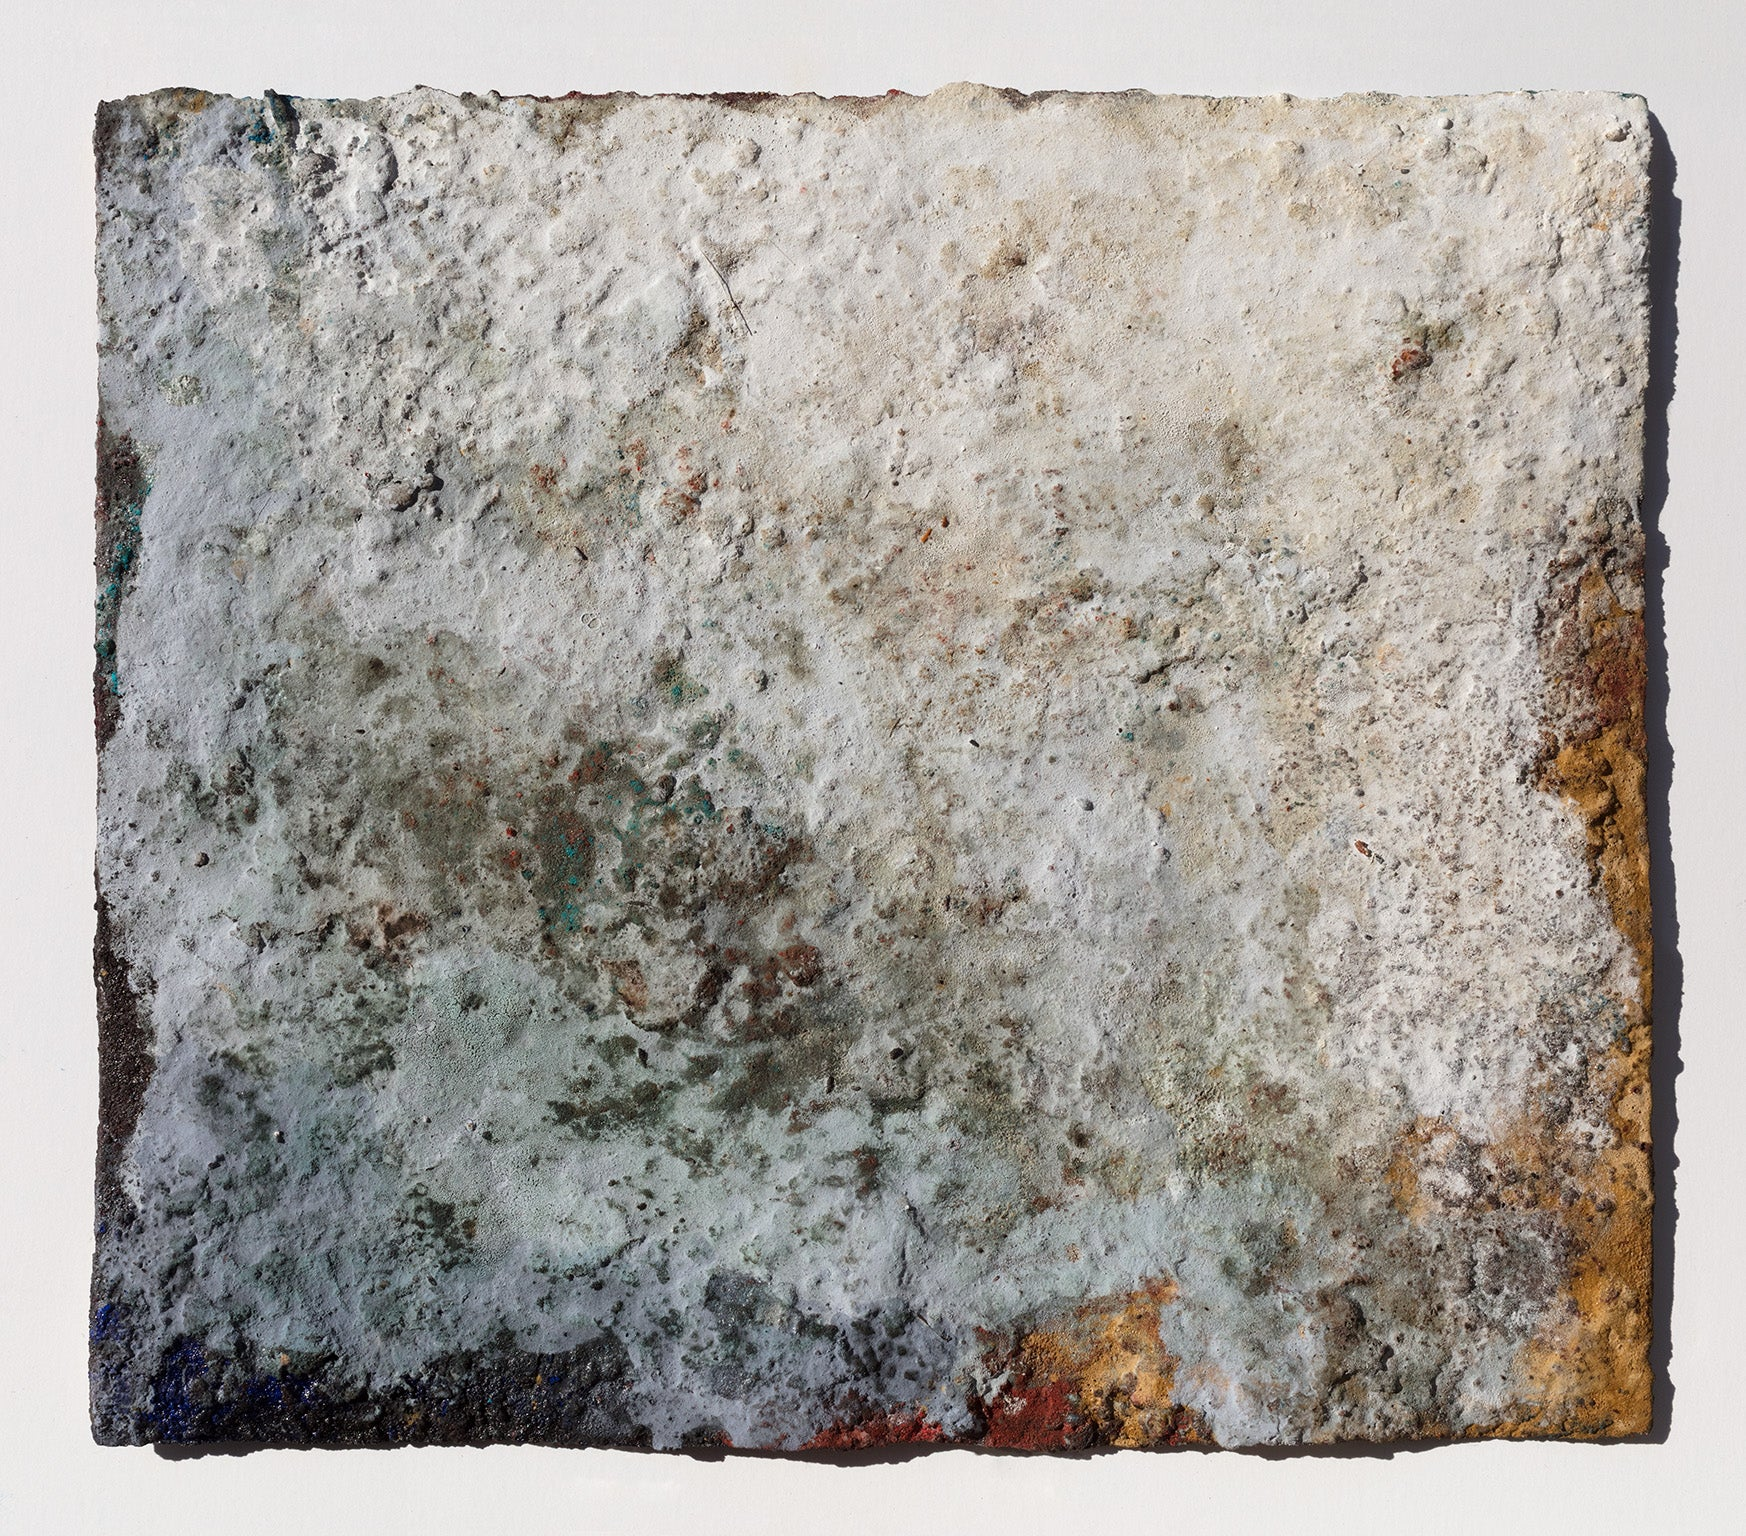 Terra Bruciata (Scorched Earth) - Small Abstract Blue and Gray Painting